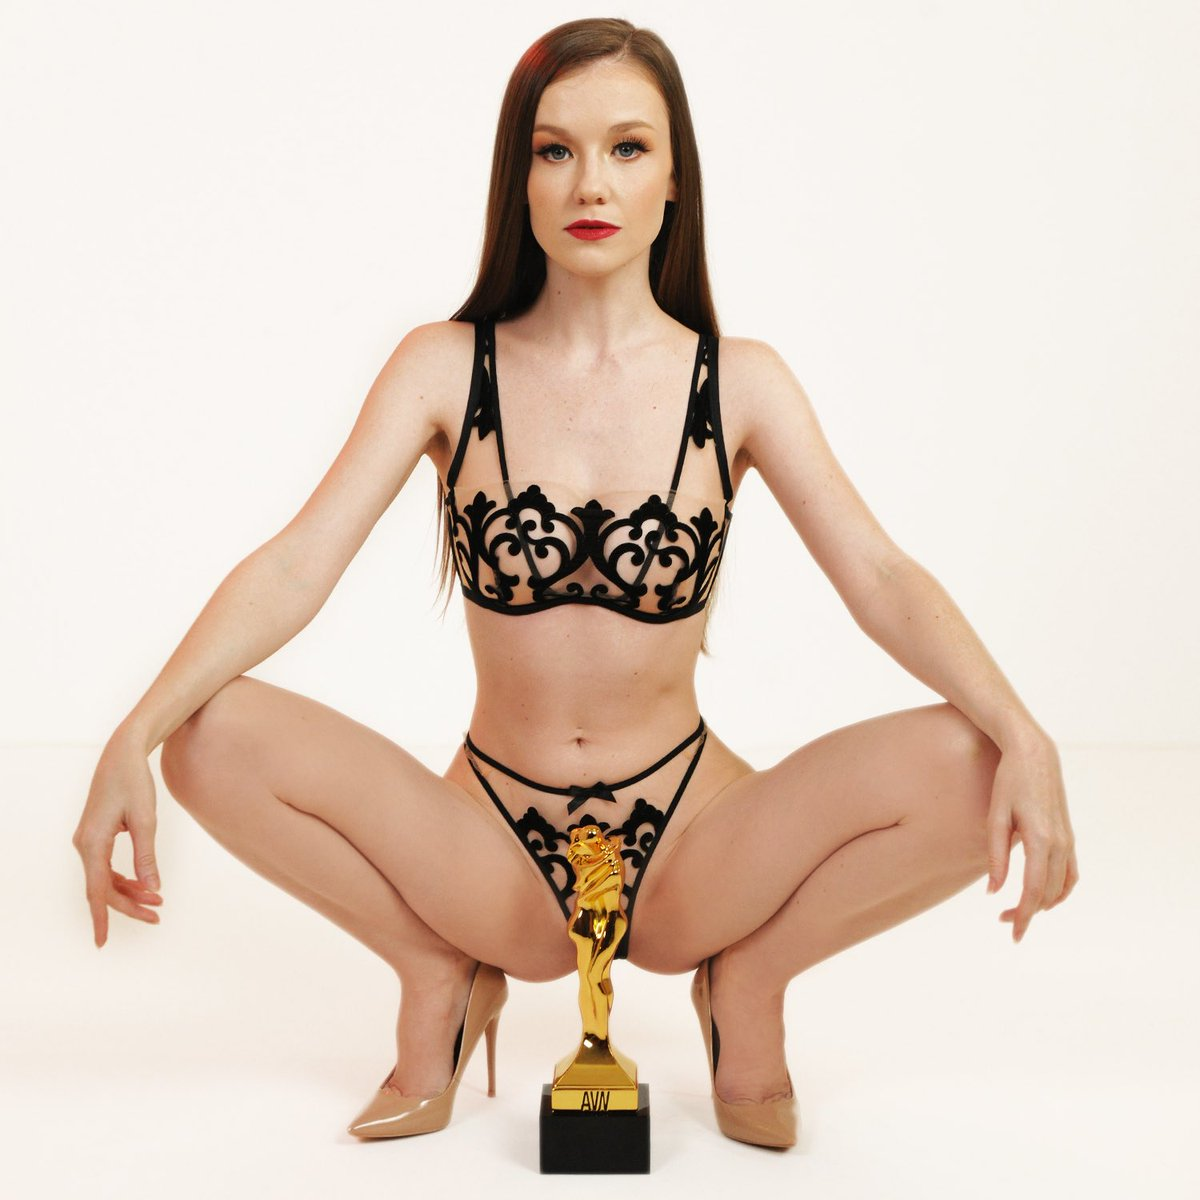 We are counting down to seeing @TheEmilyBloom co-hosting the #AVNAwards